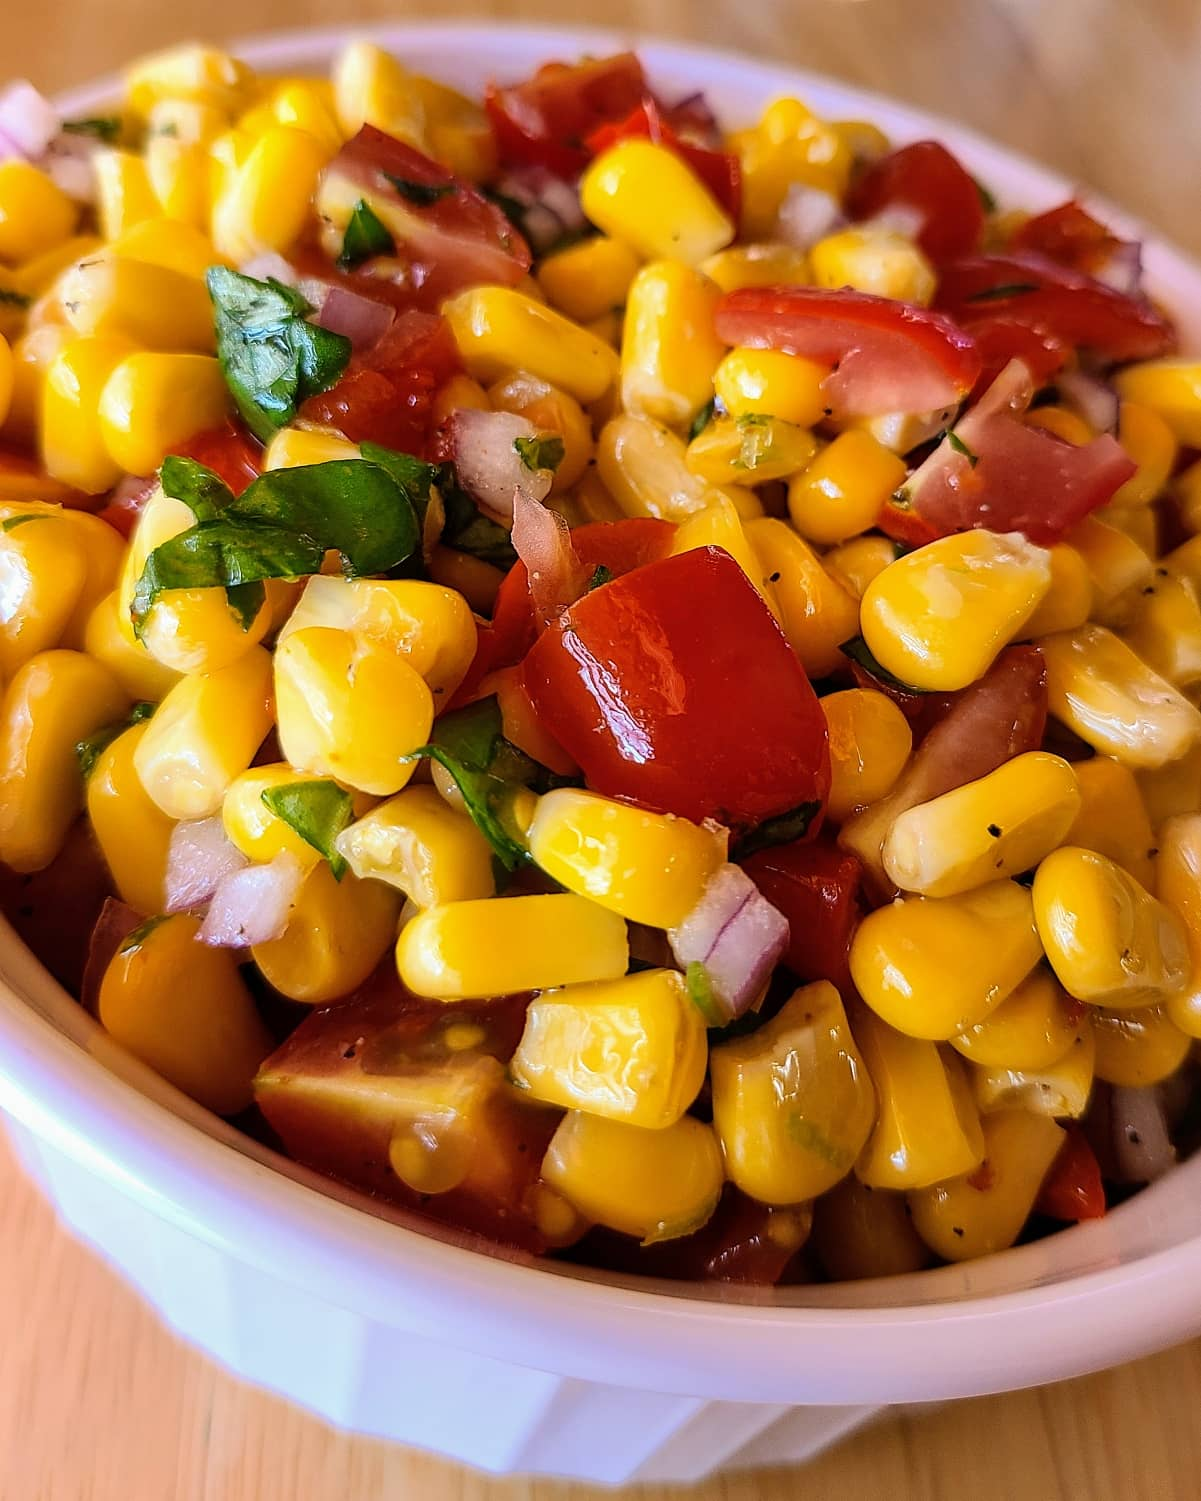 Summer Salad with Grilled Corn and Cherry Tomatoes